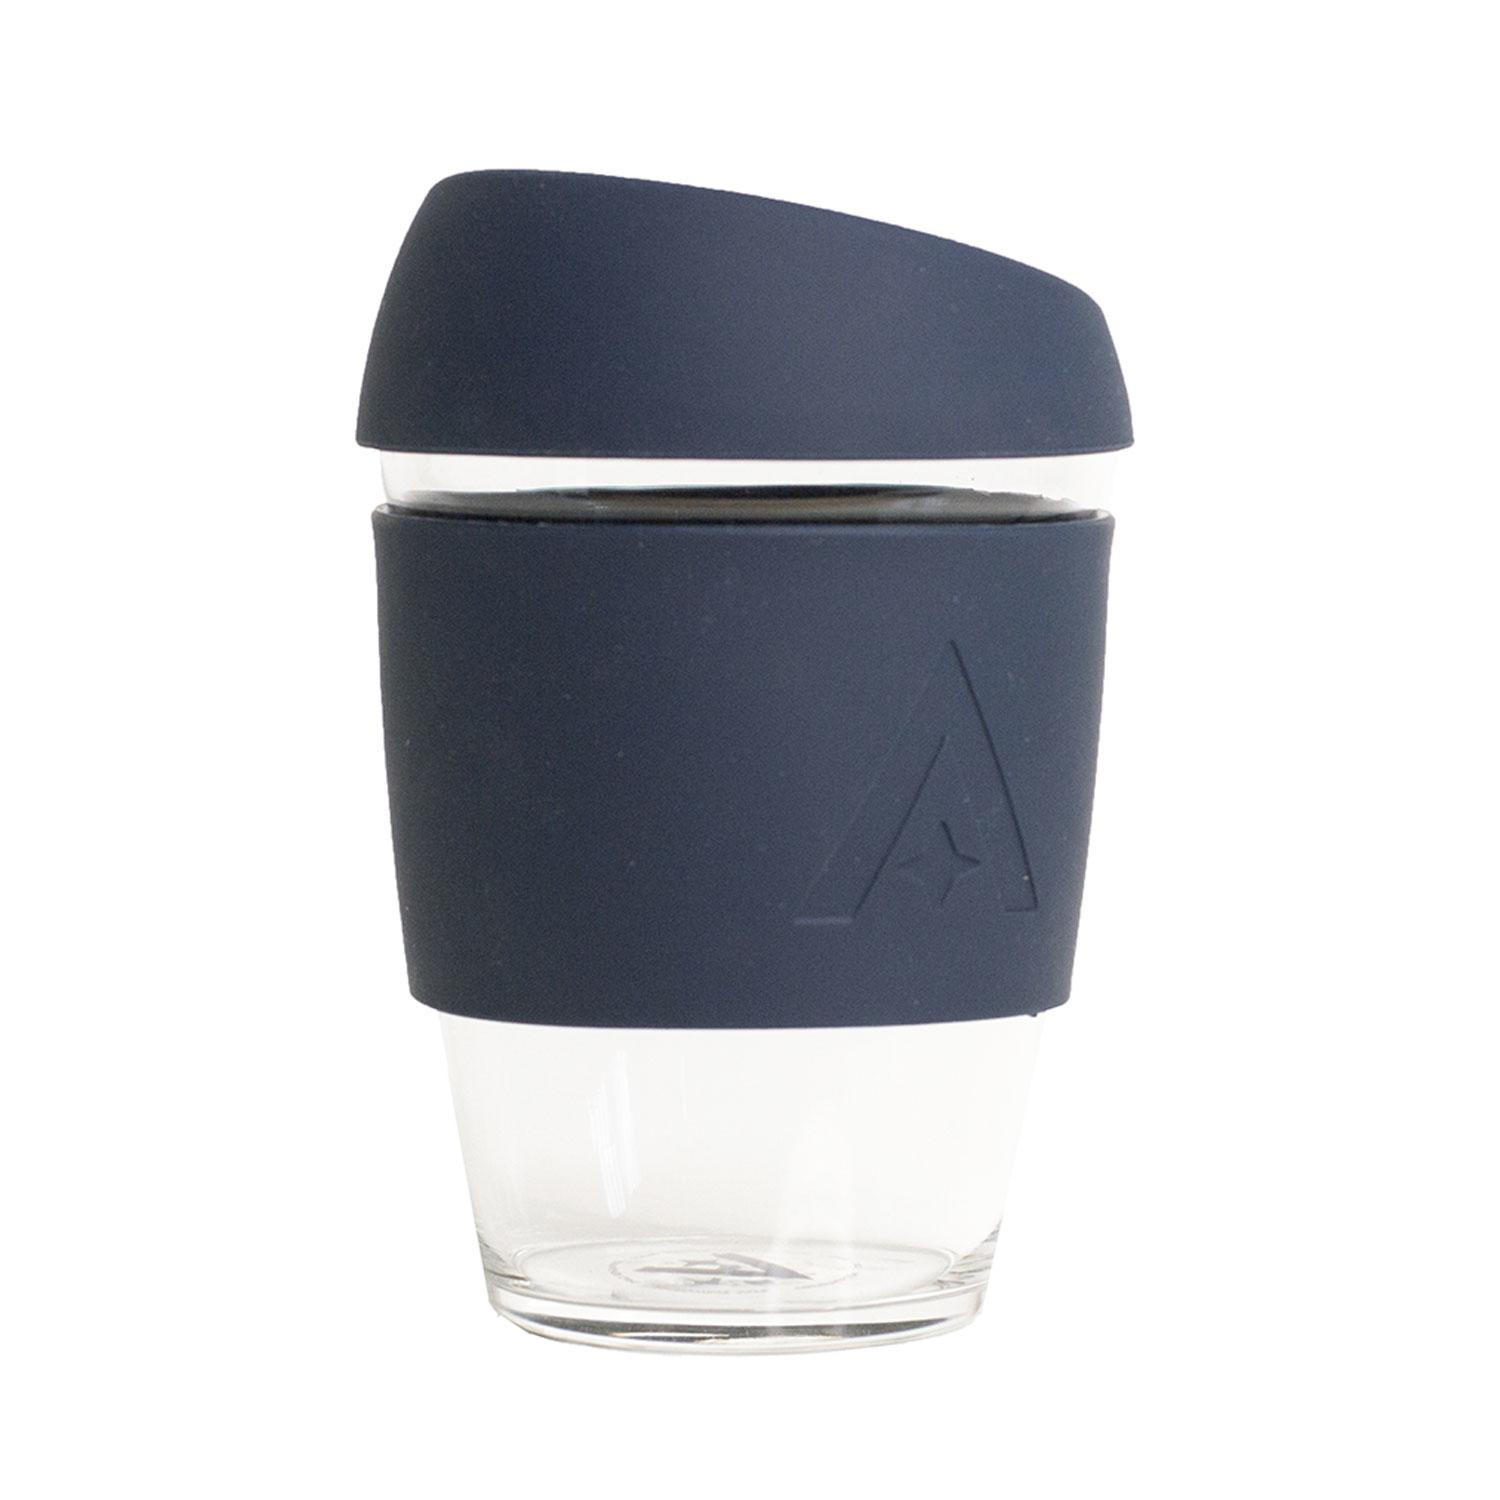 Uberstar Reusable Glass Travel Cup - Mood Indigo - Only £14.99